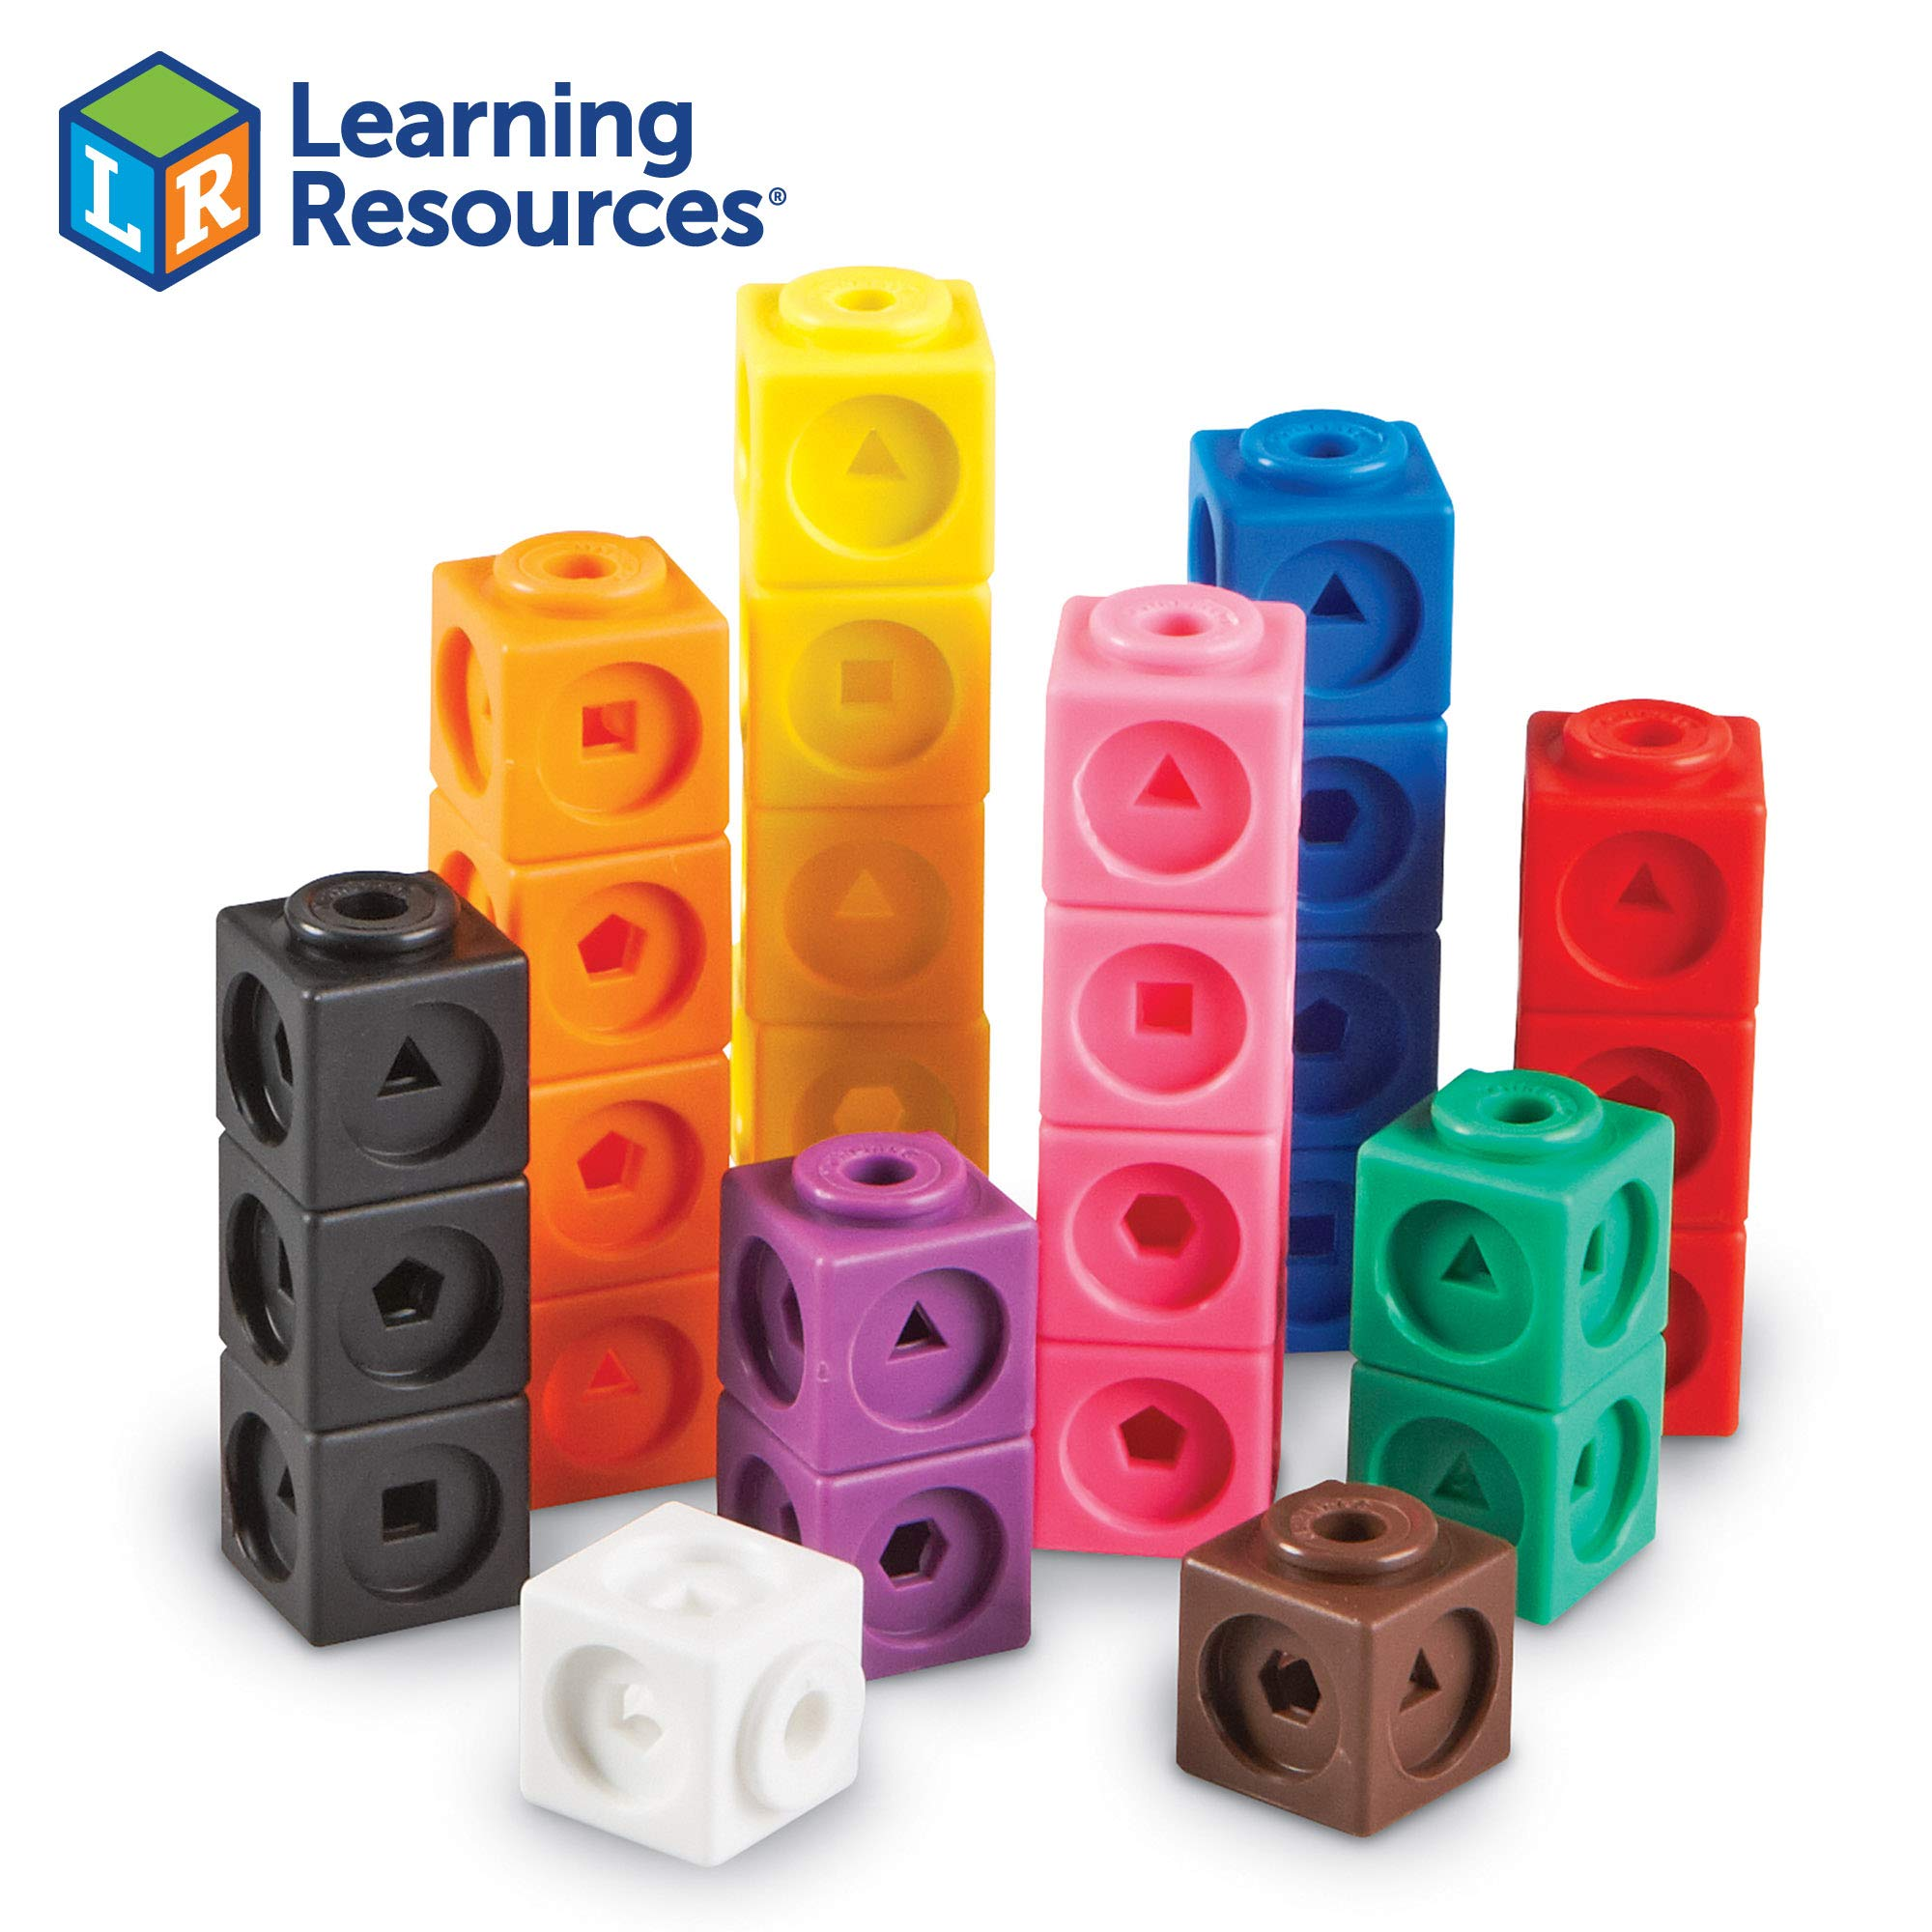 Learning Resources Mathlink Cubes, Educational Counting Toy, Early Math Skills, Set of 100 Cubes by Learning Resources